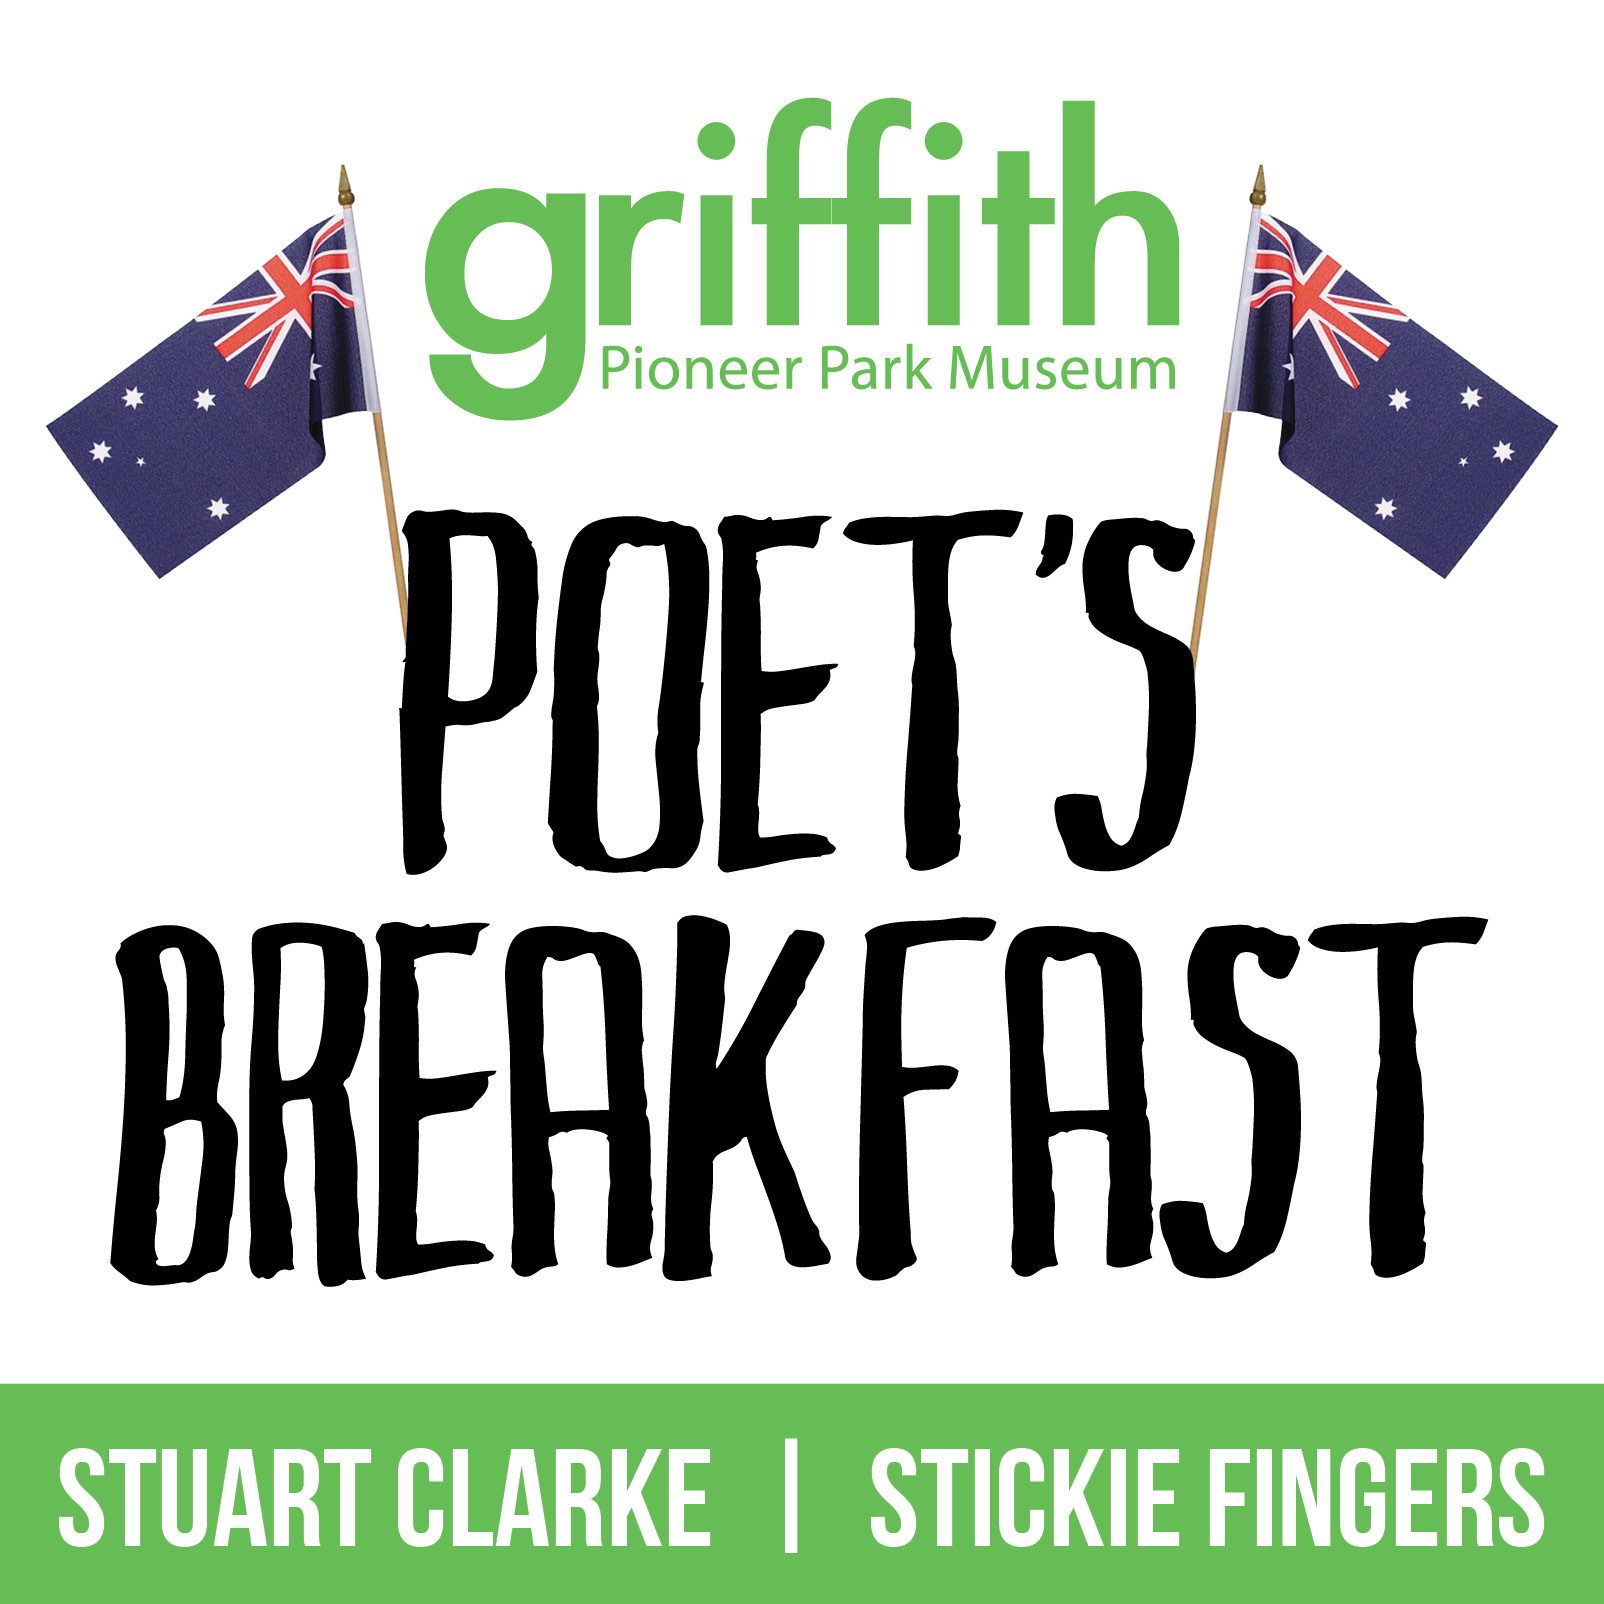 Poet's Breakfast at The Museum